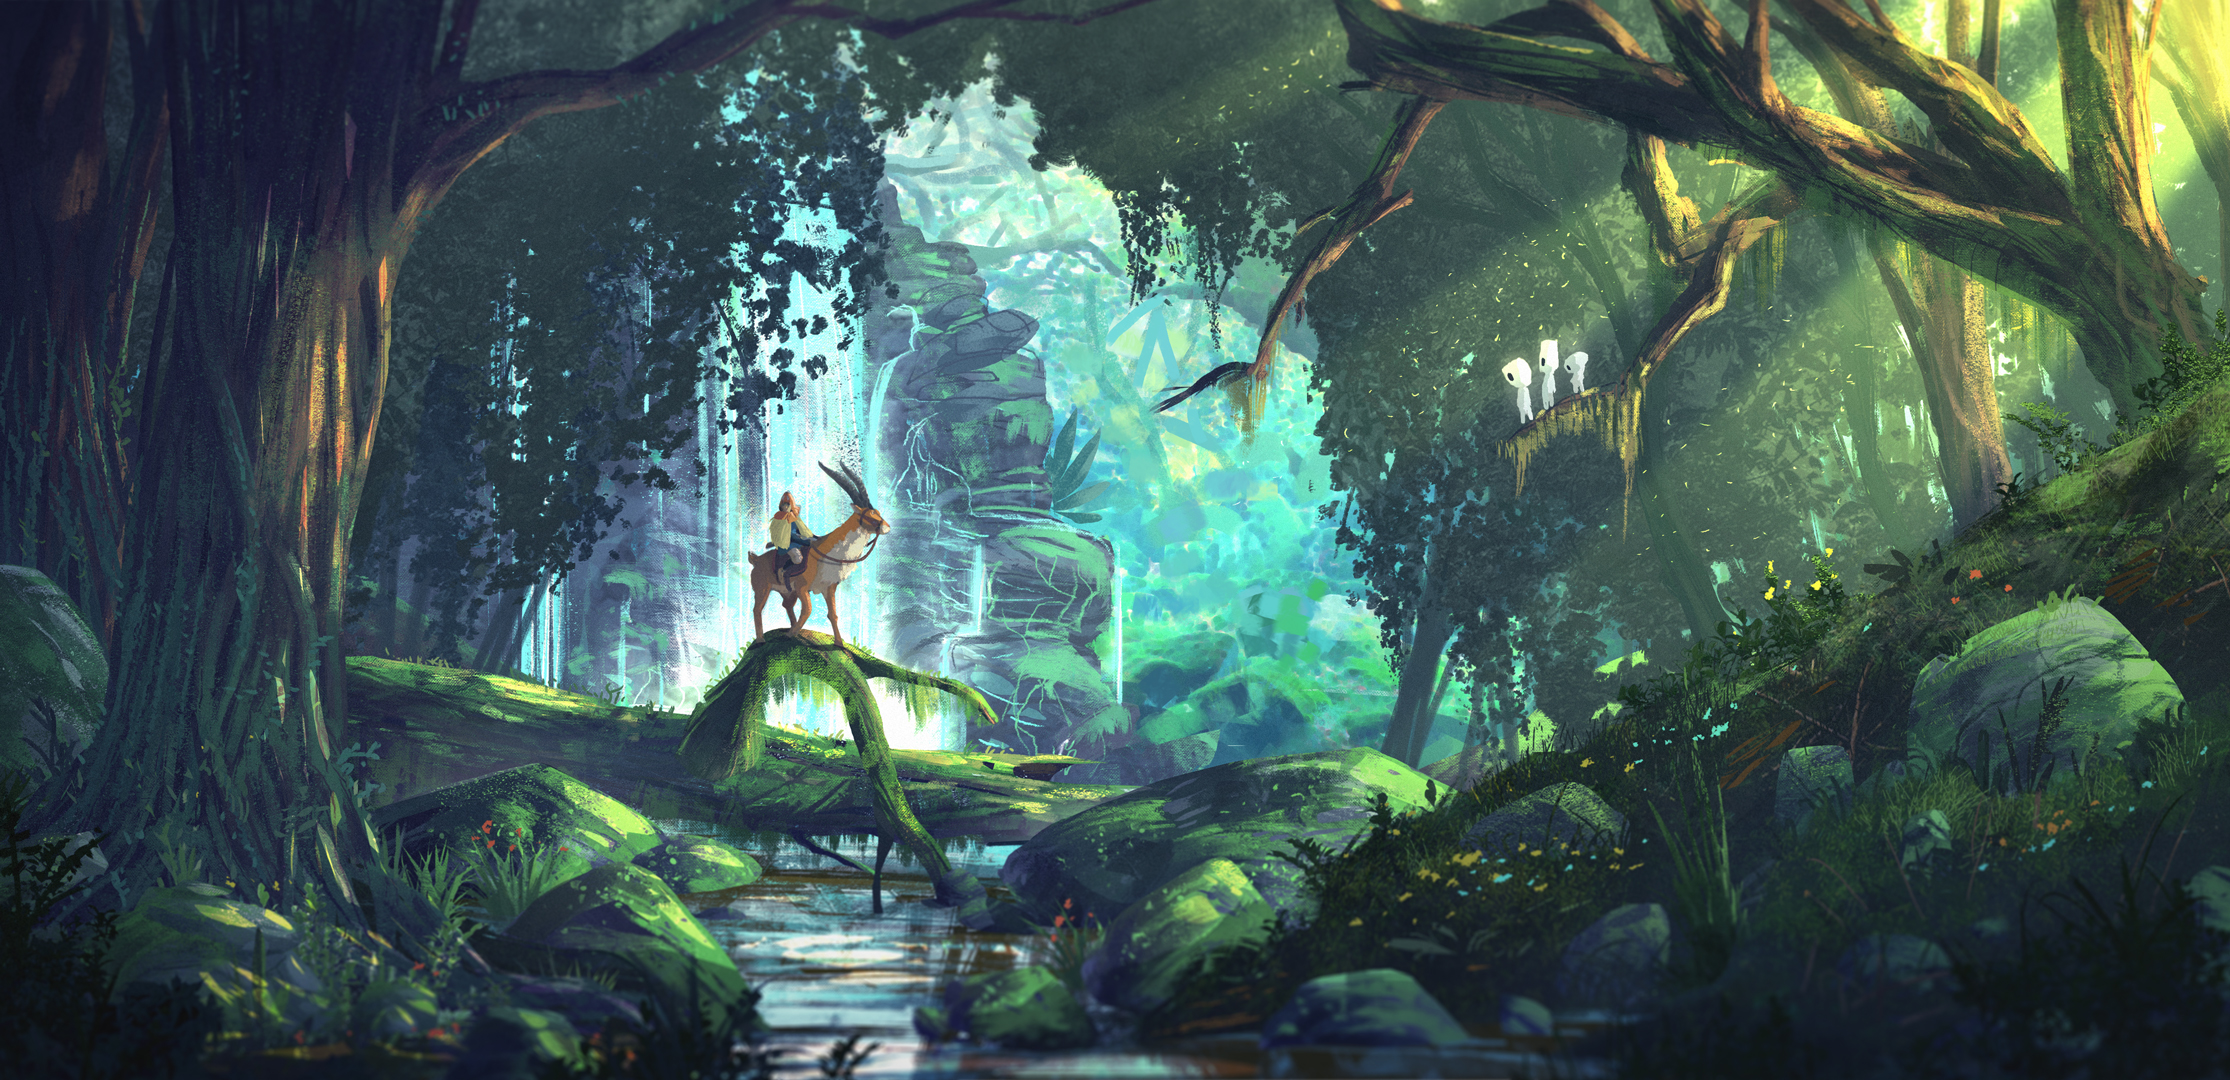 Princess Mononoke Painted Forest Wallpaper High Res